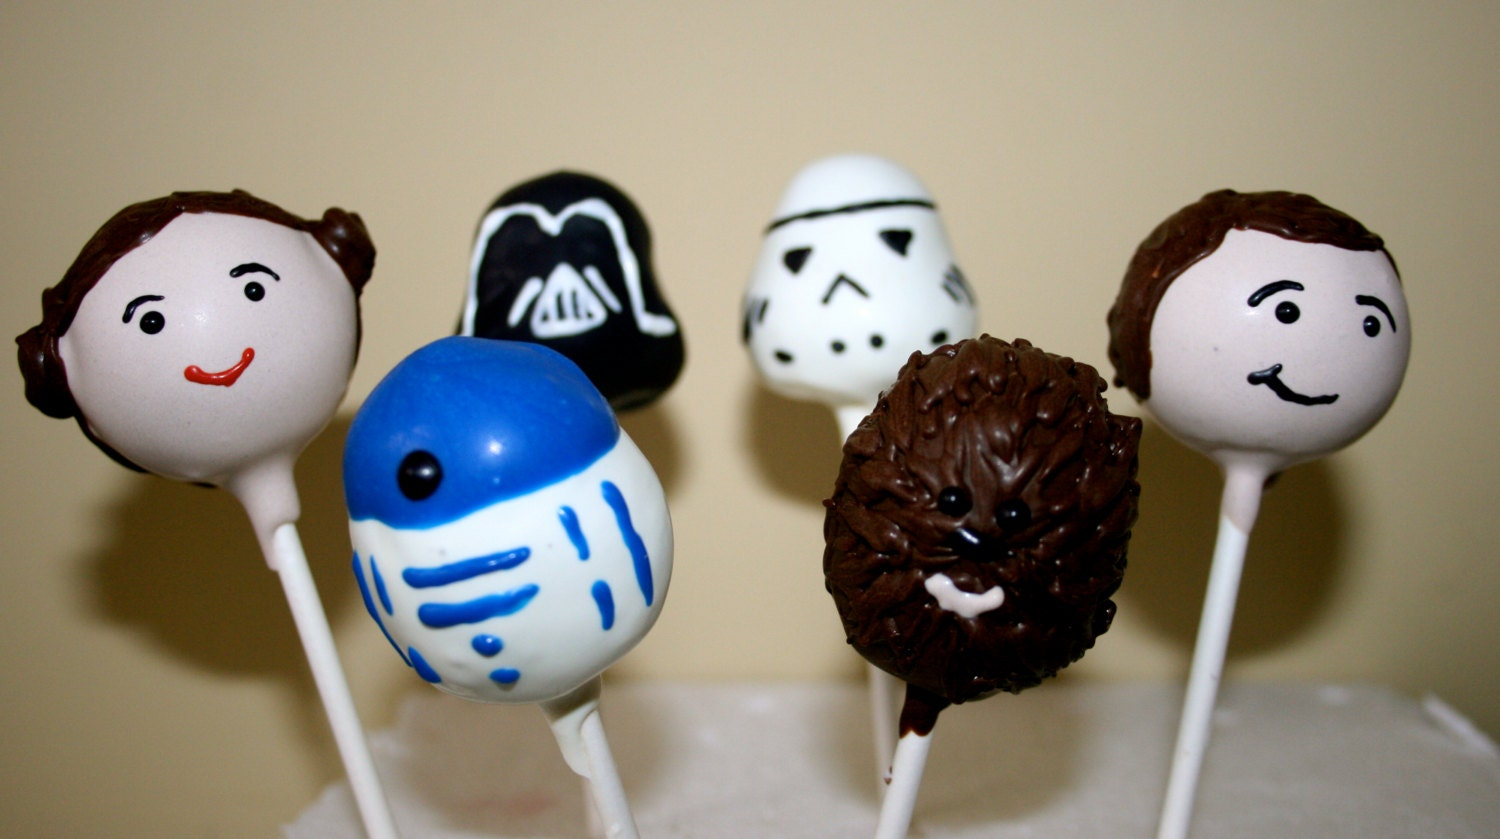 Star Wars Cake Pop Images : Star Wars Character Cake Pops by FayesCakePops on Etsy